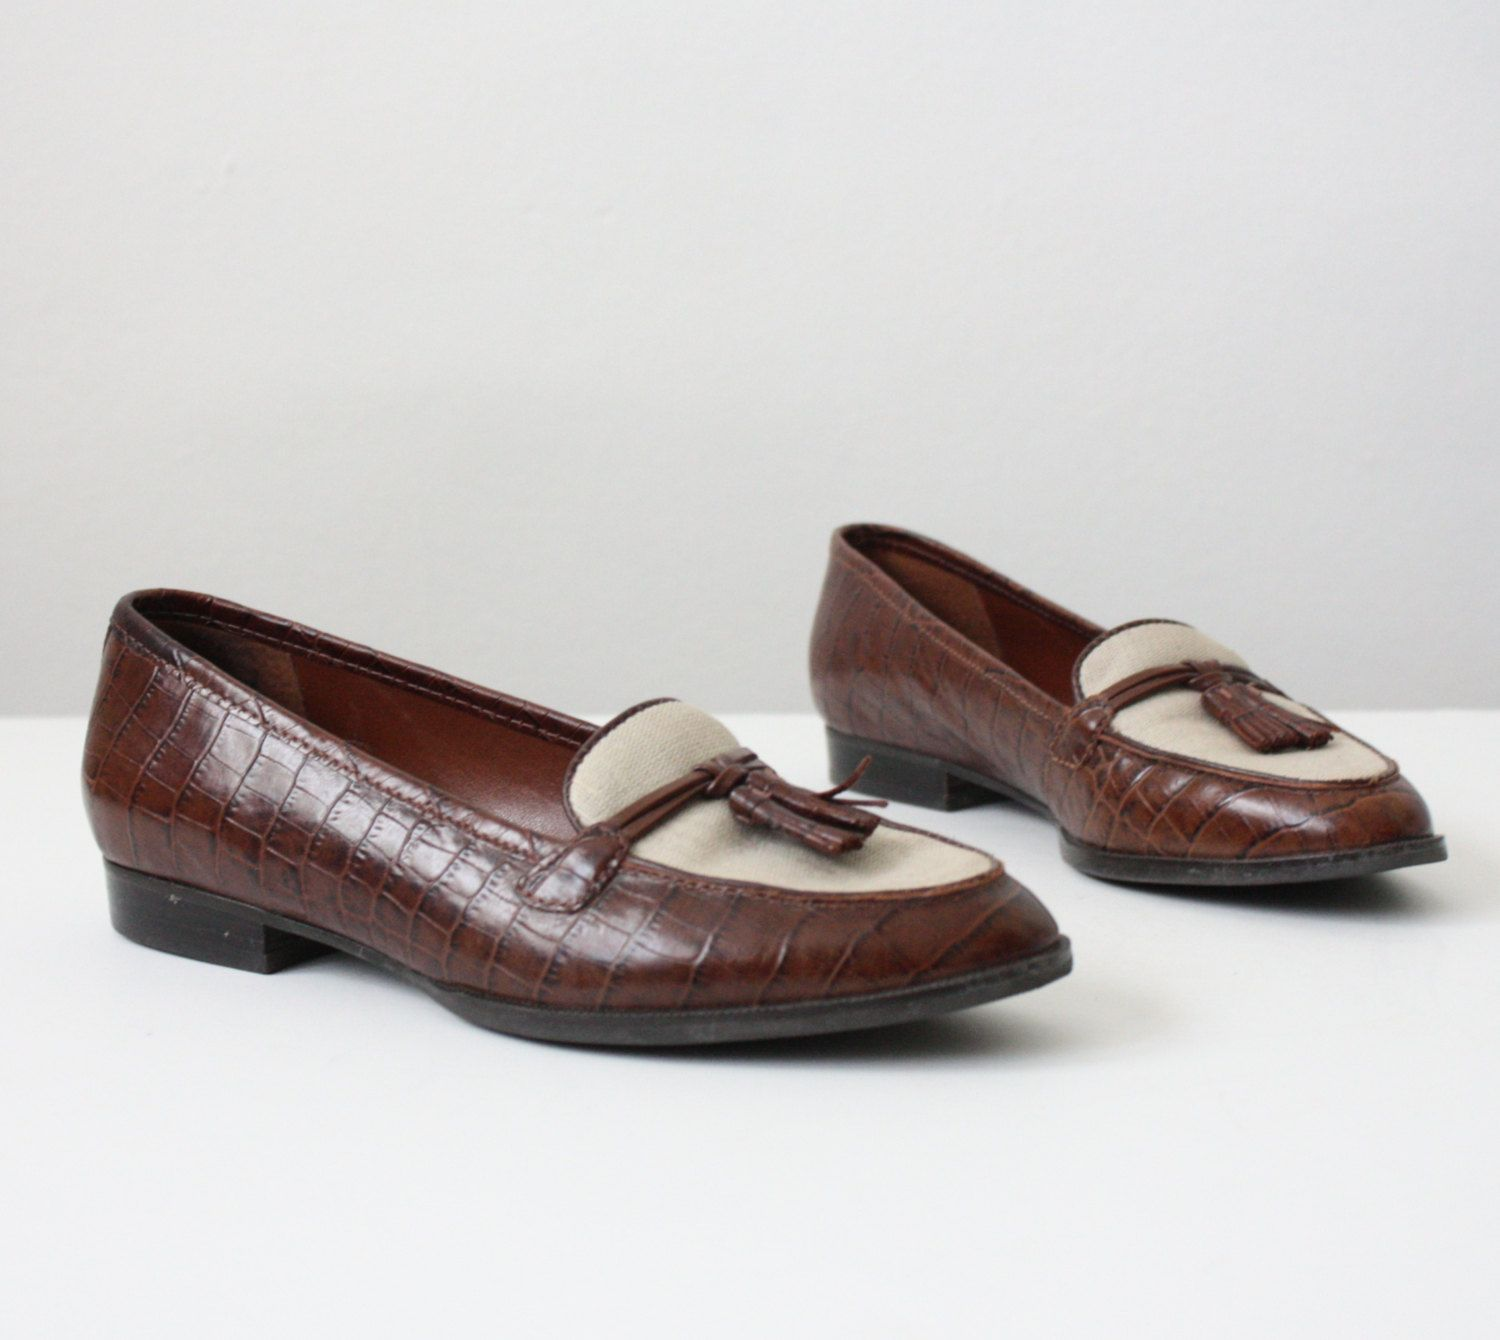 f1889634fa8 Vintage Oxford Loafers